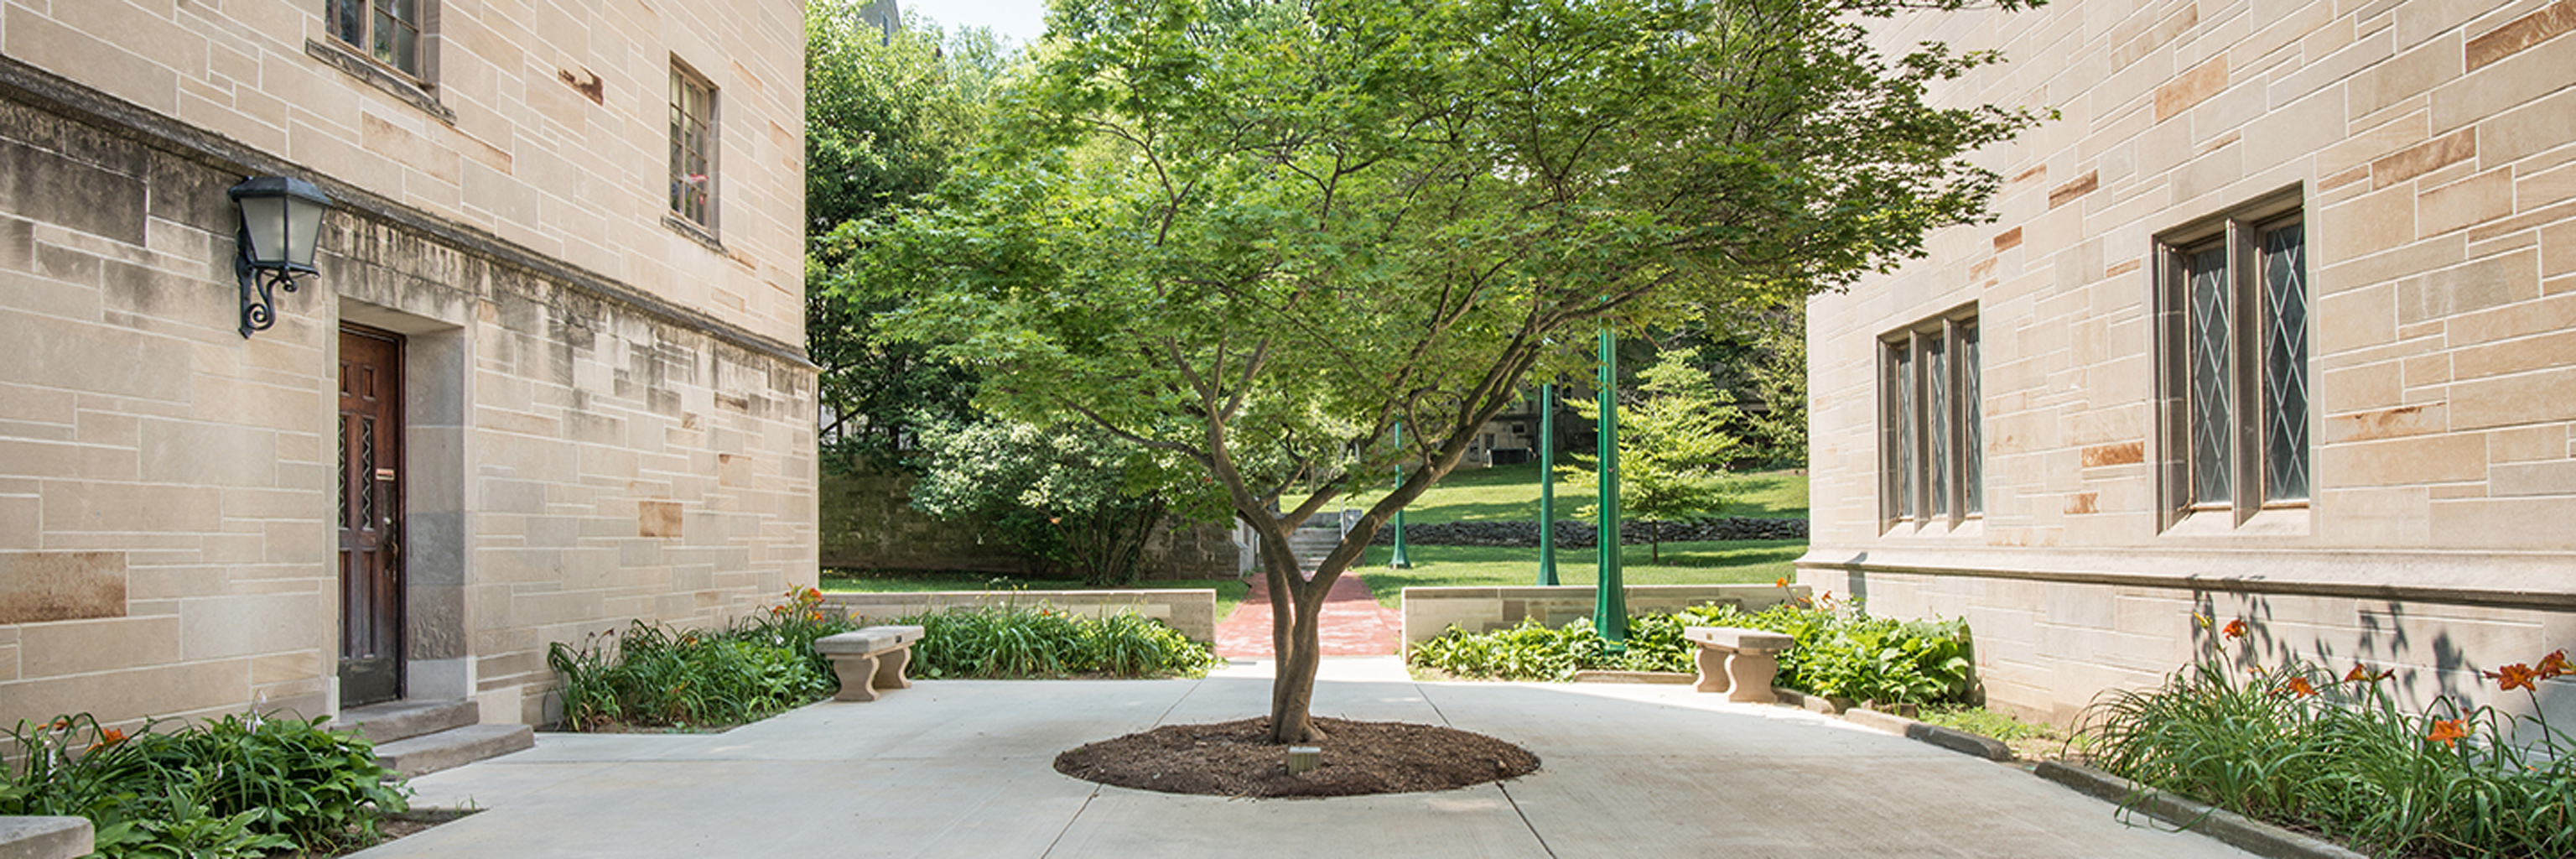 Tree growing in the courtyard by Sycamore Hall.